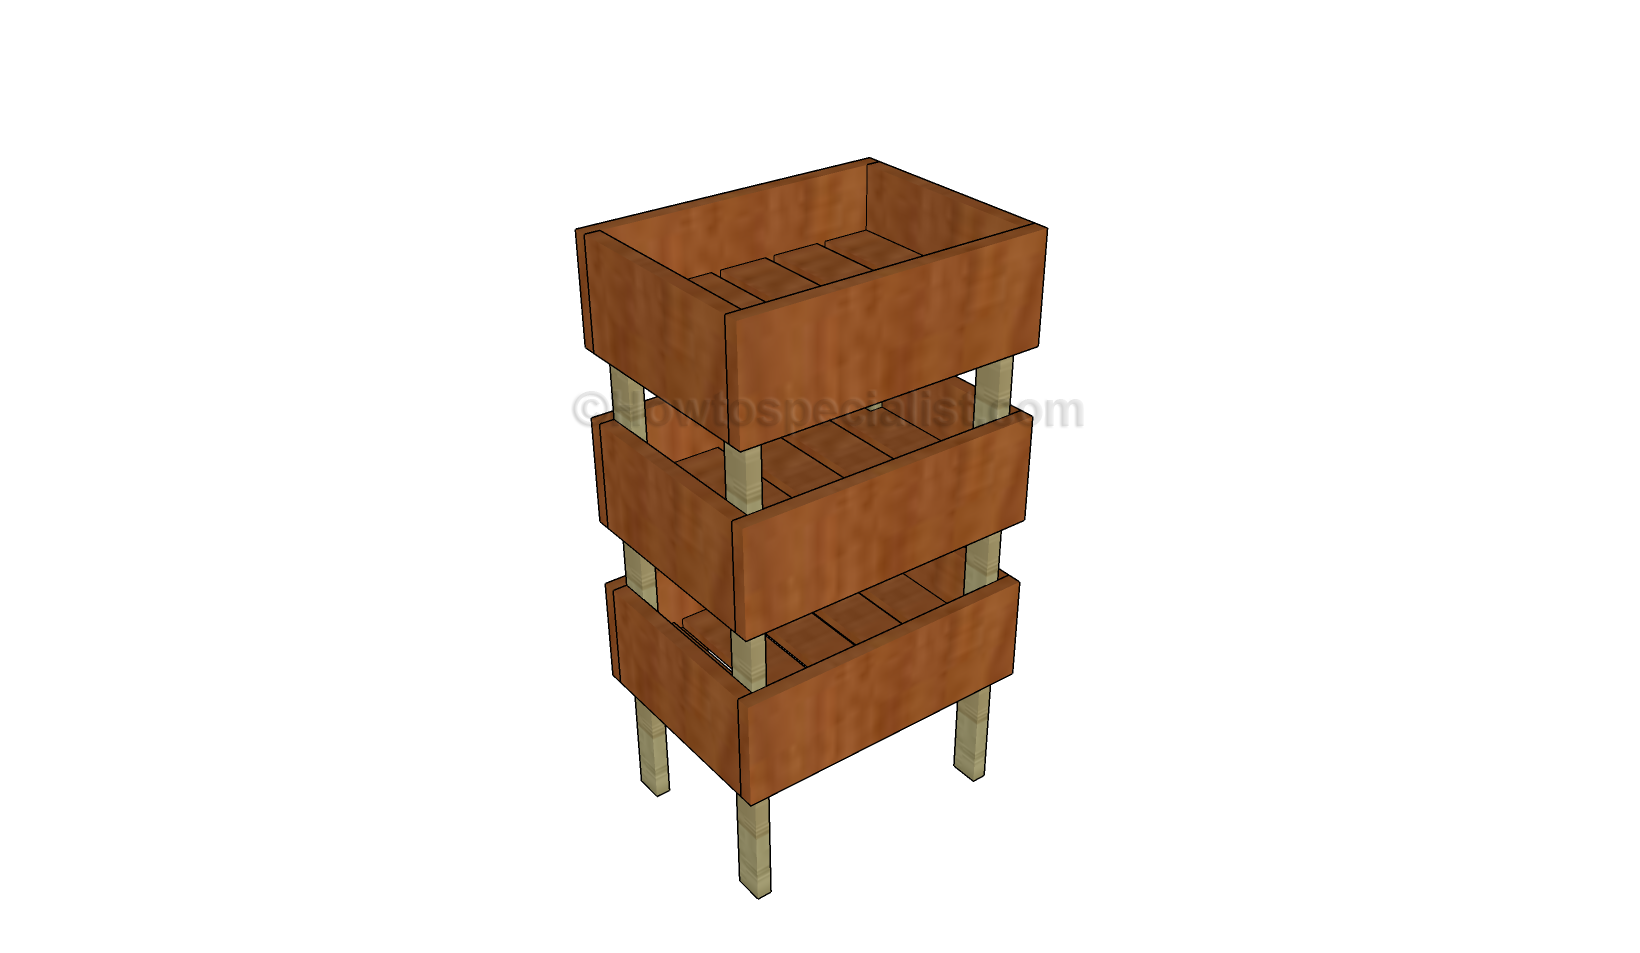 Fruit crates plans